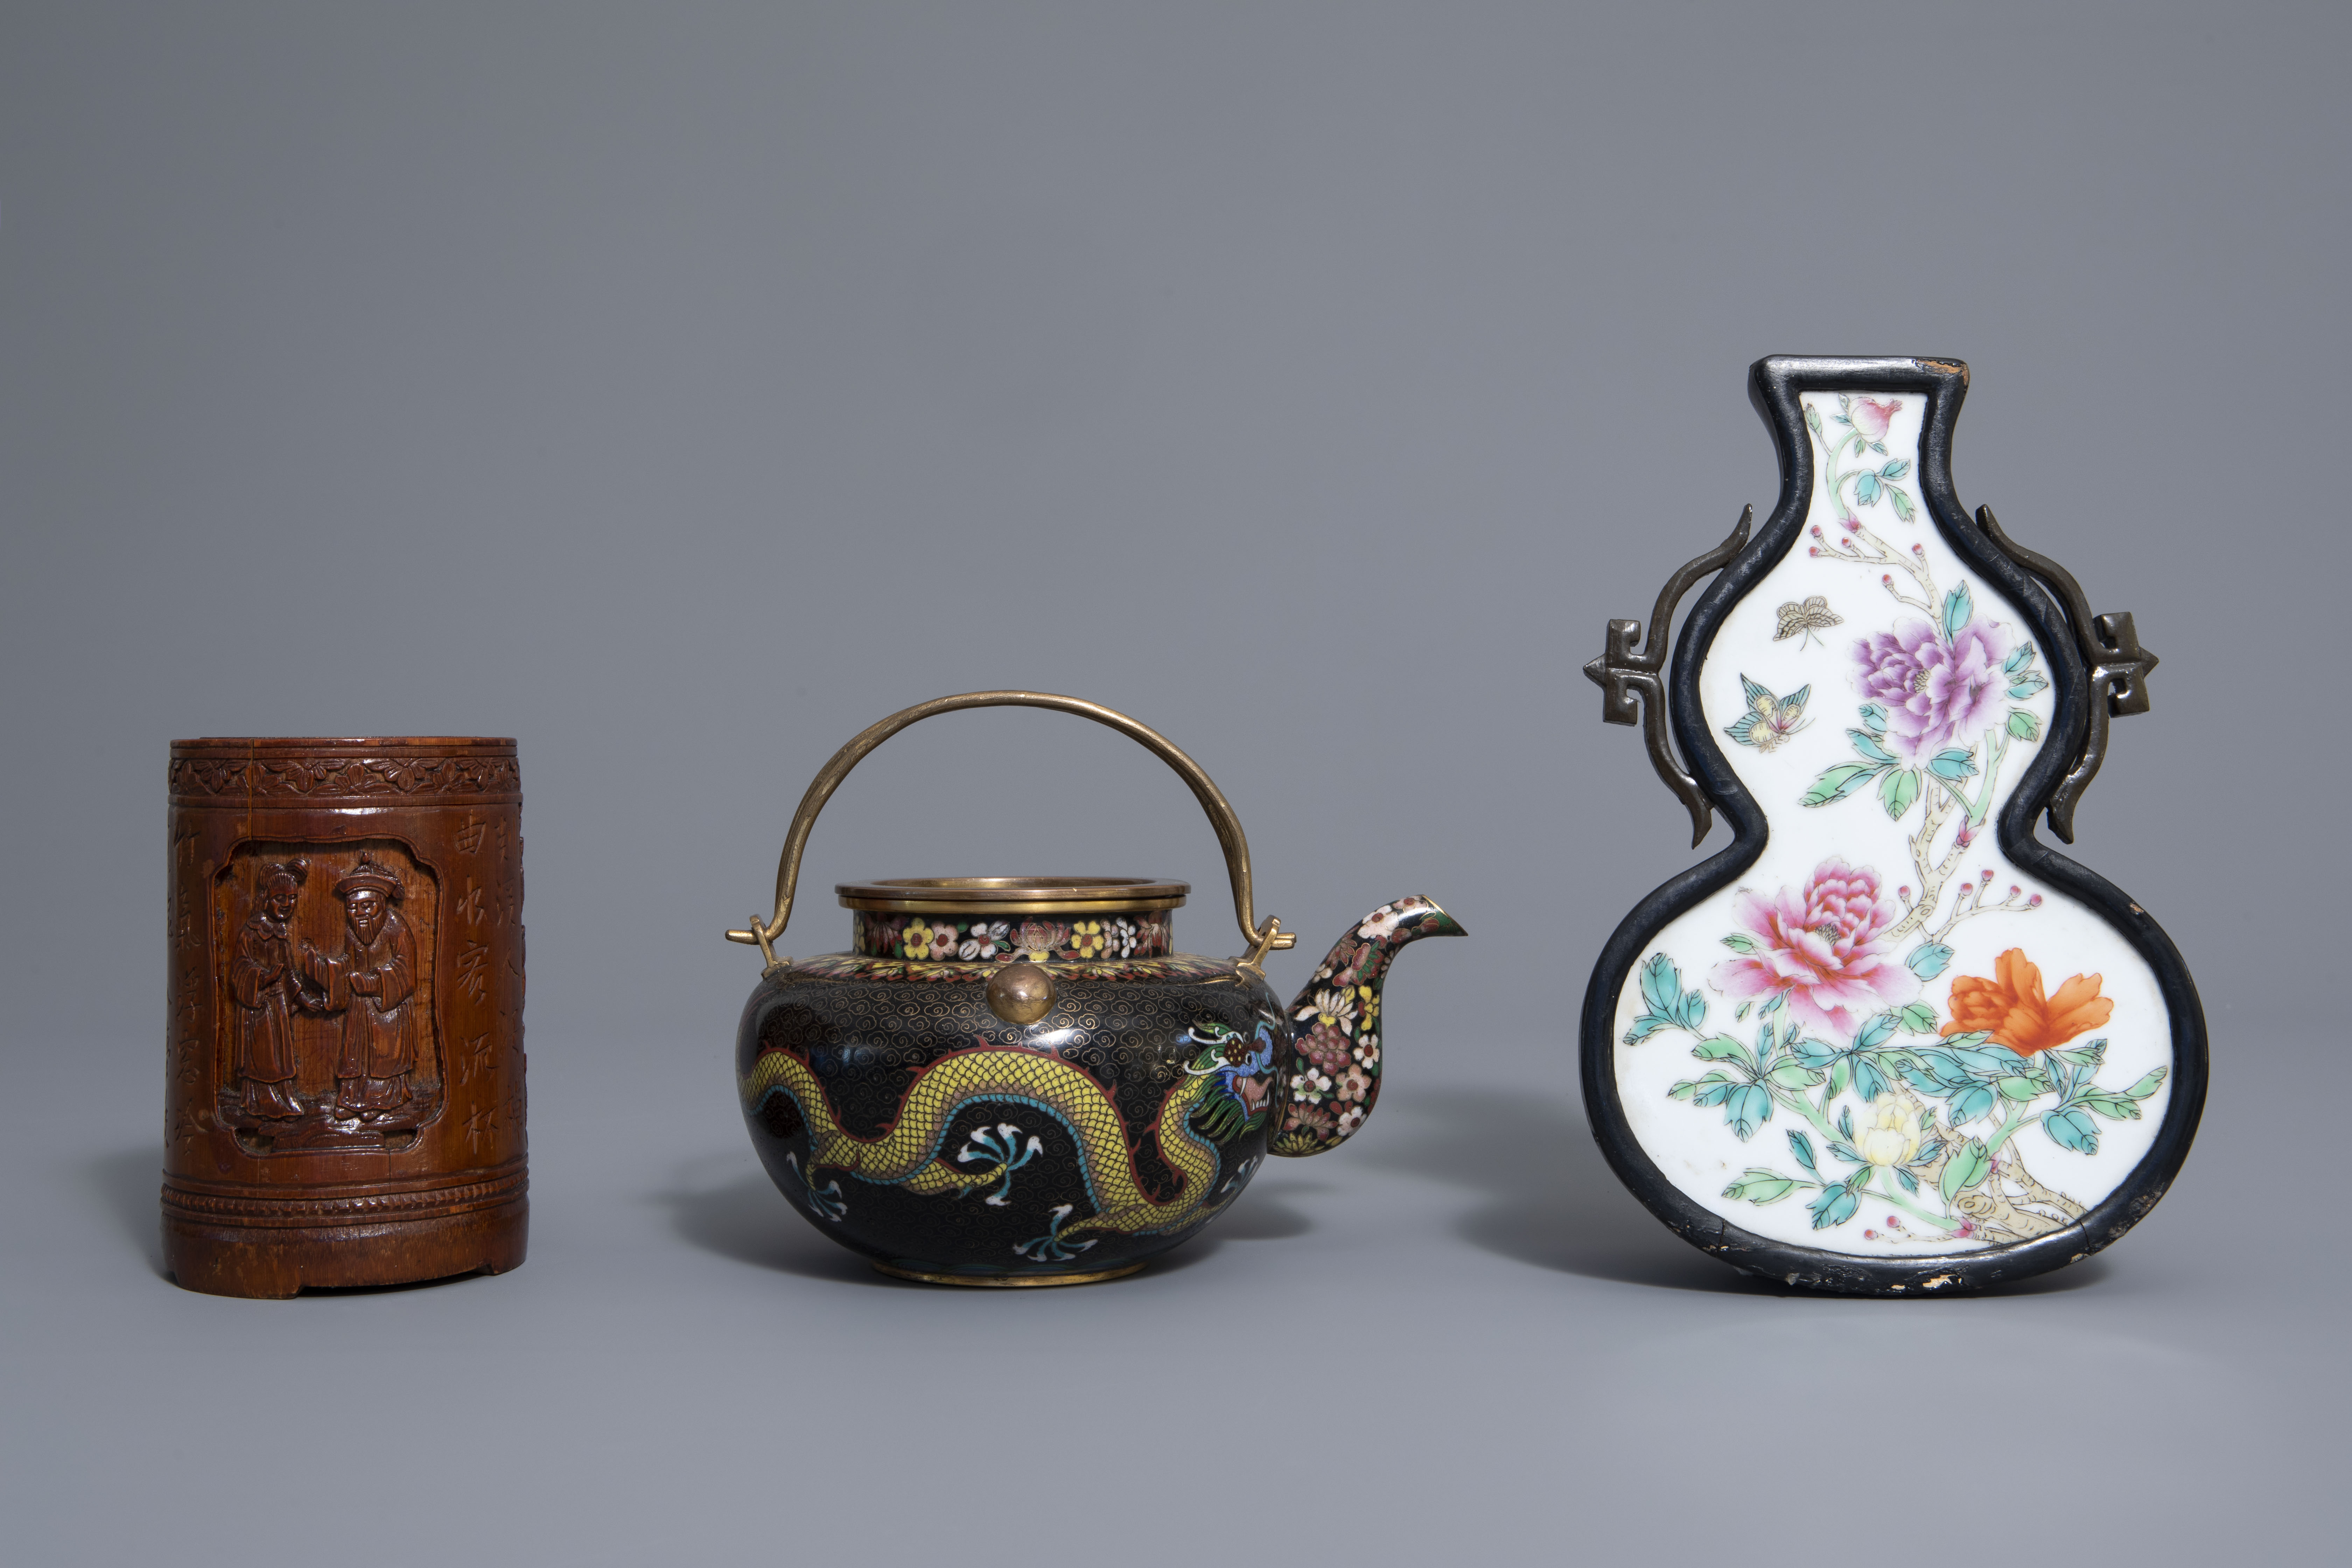 A Chinese tea block, cloisonné teapot, wall vase, bamboo brush pot & 3 red lacquer vases, 20th C. - Image 10 of 16